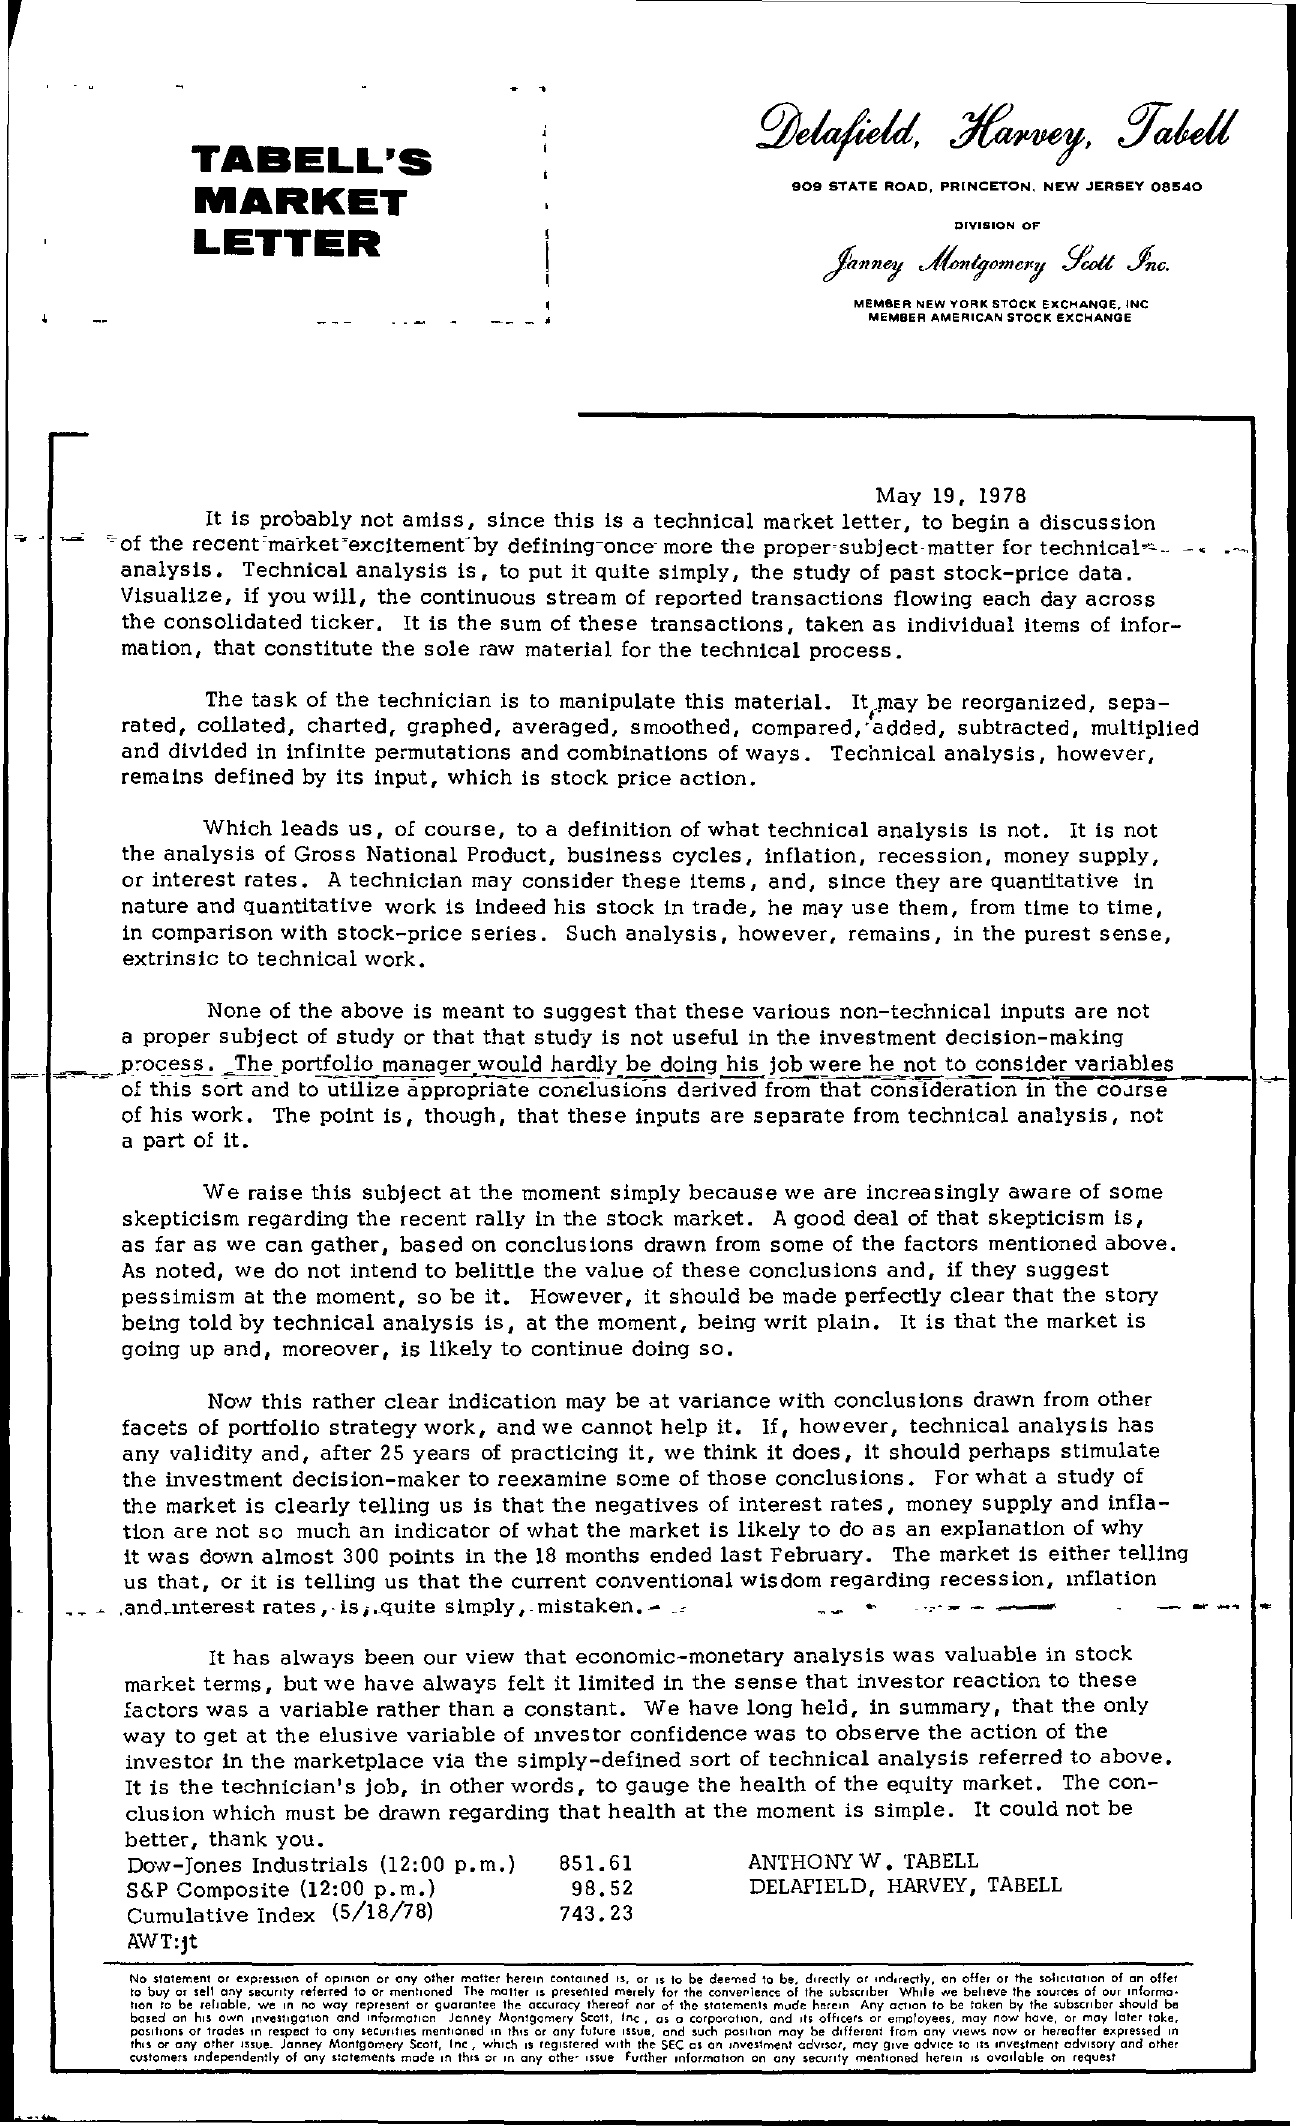 Tabell's Market Letter - May 19, 1978